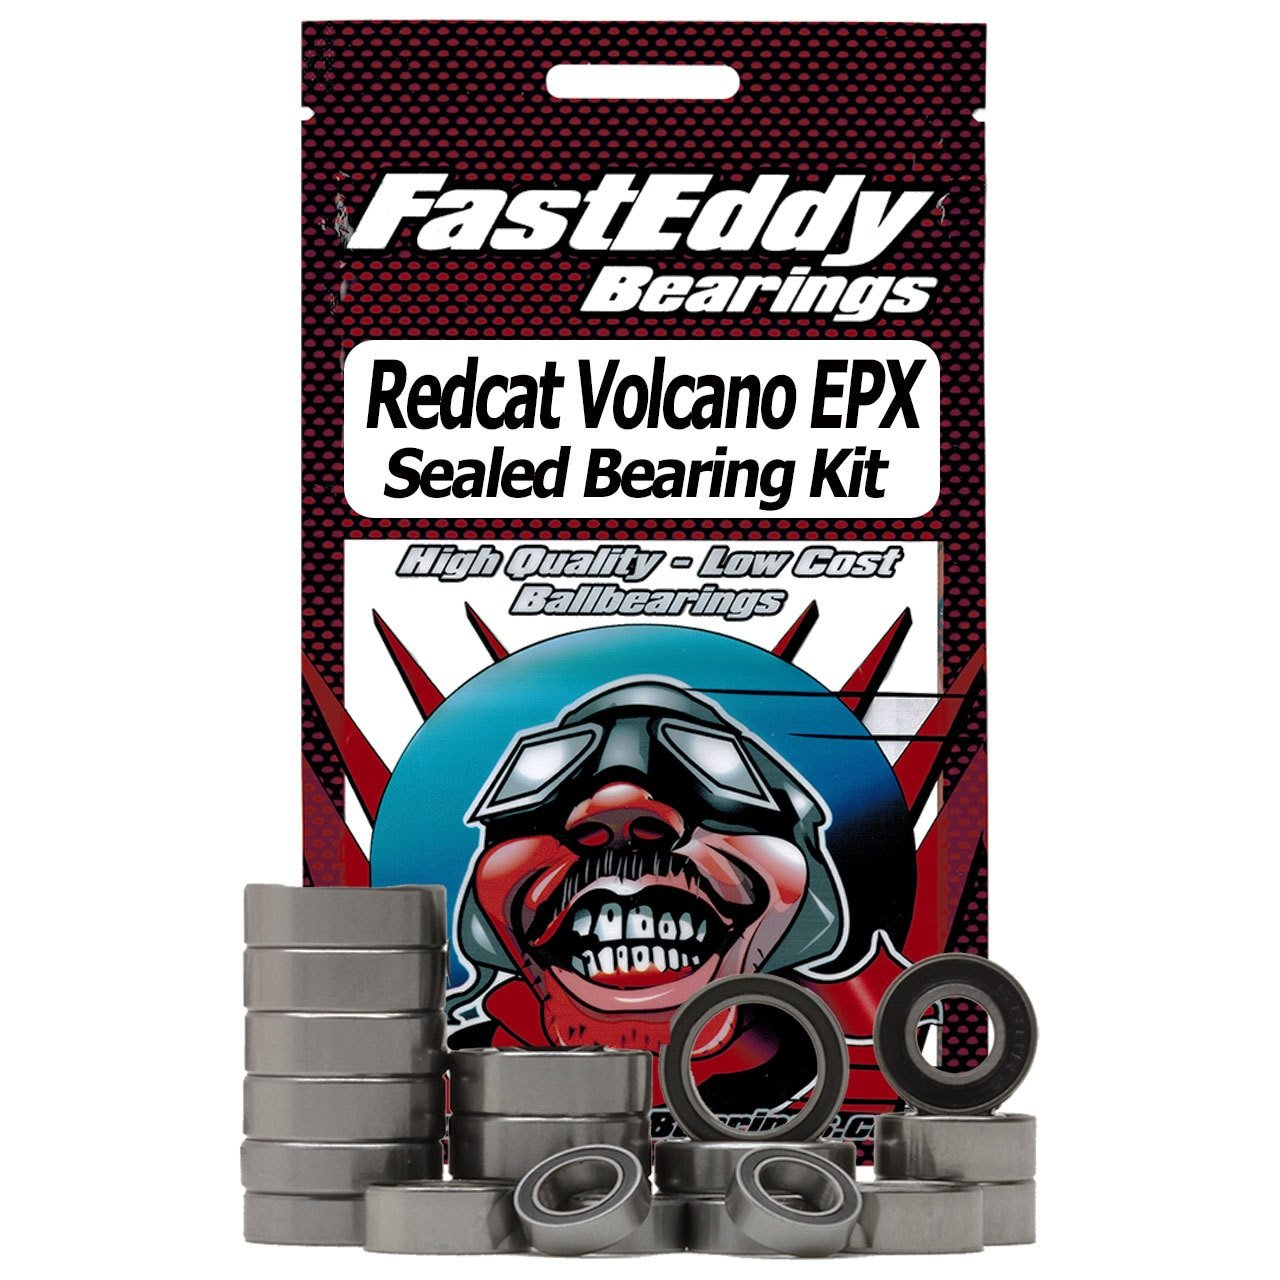 Redcat Volcano EPX Sealed Ball Bearing Kit for RC Cars